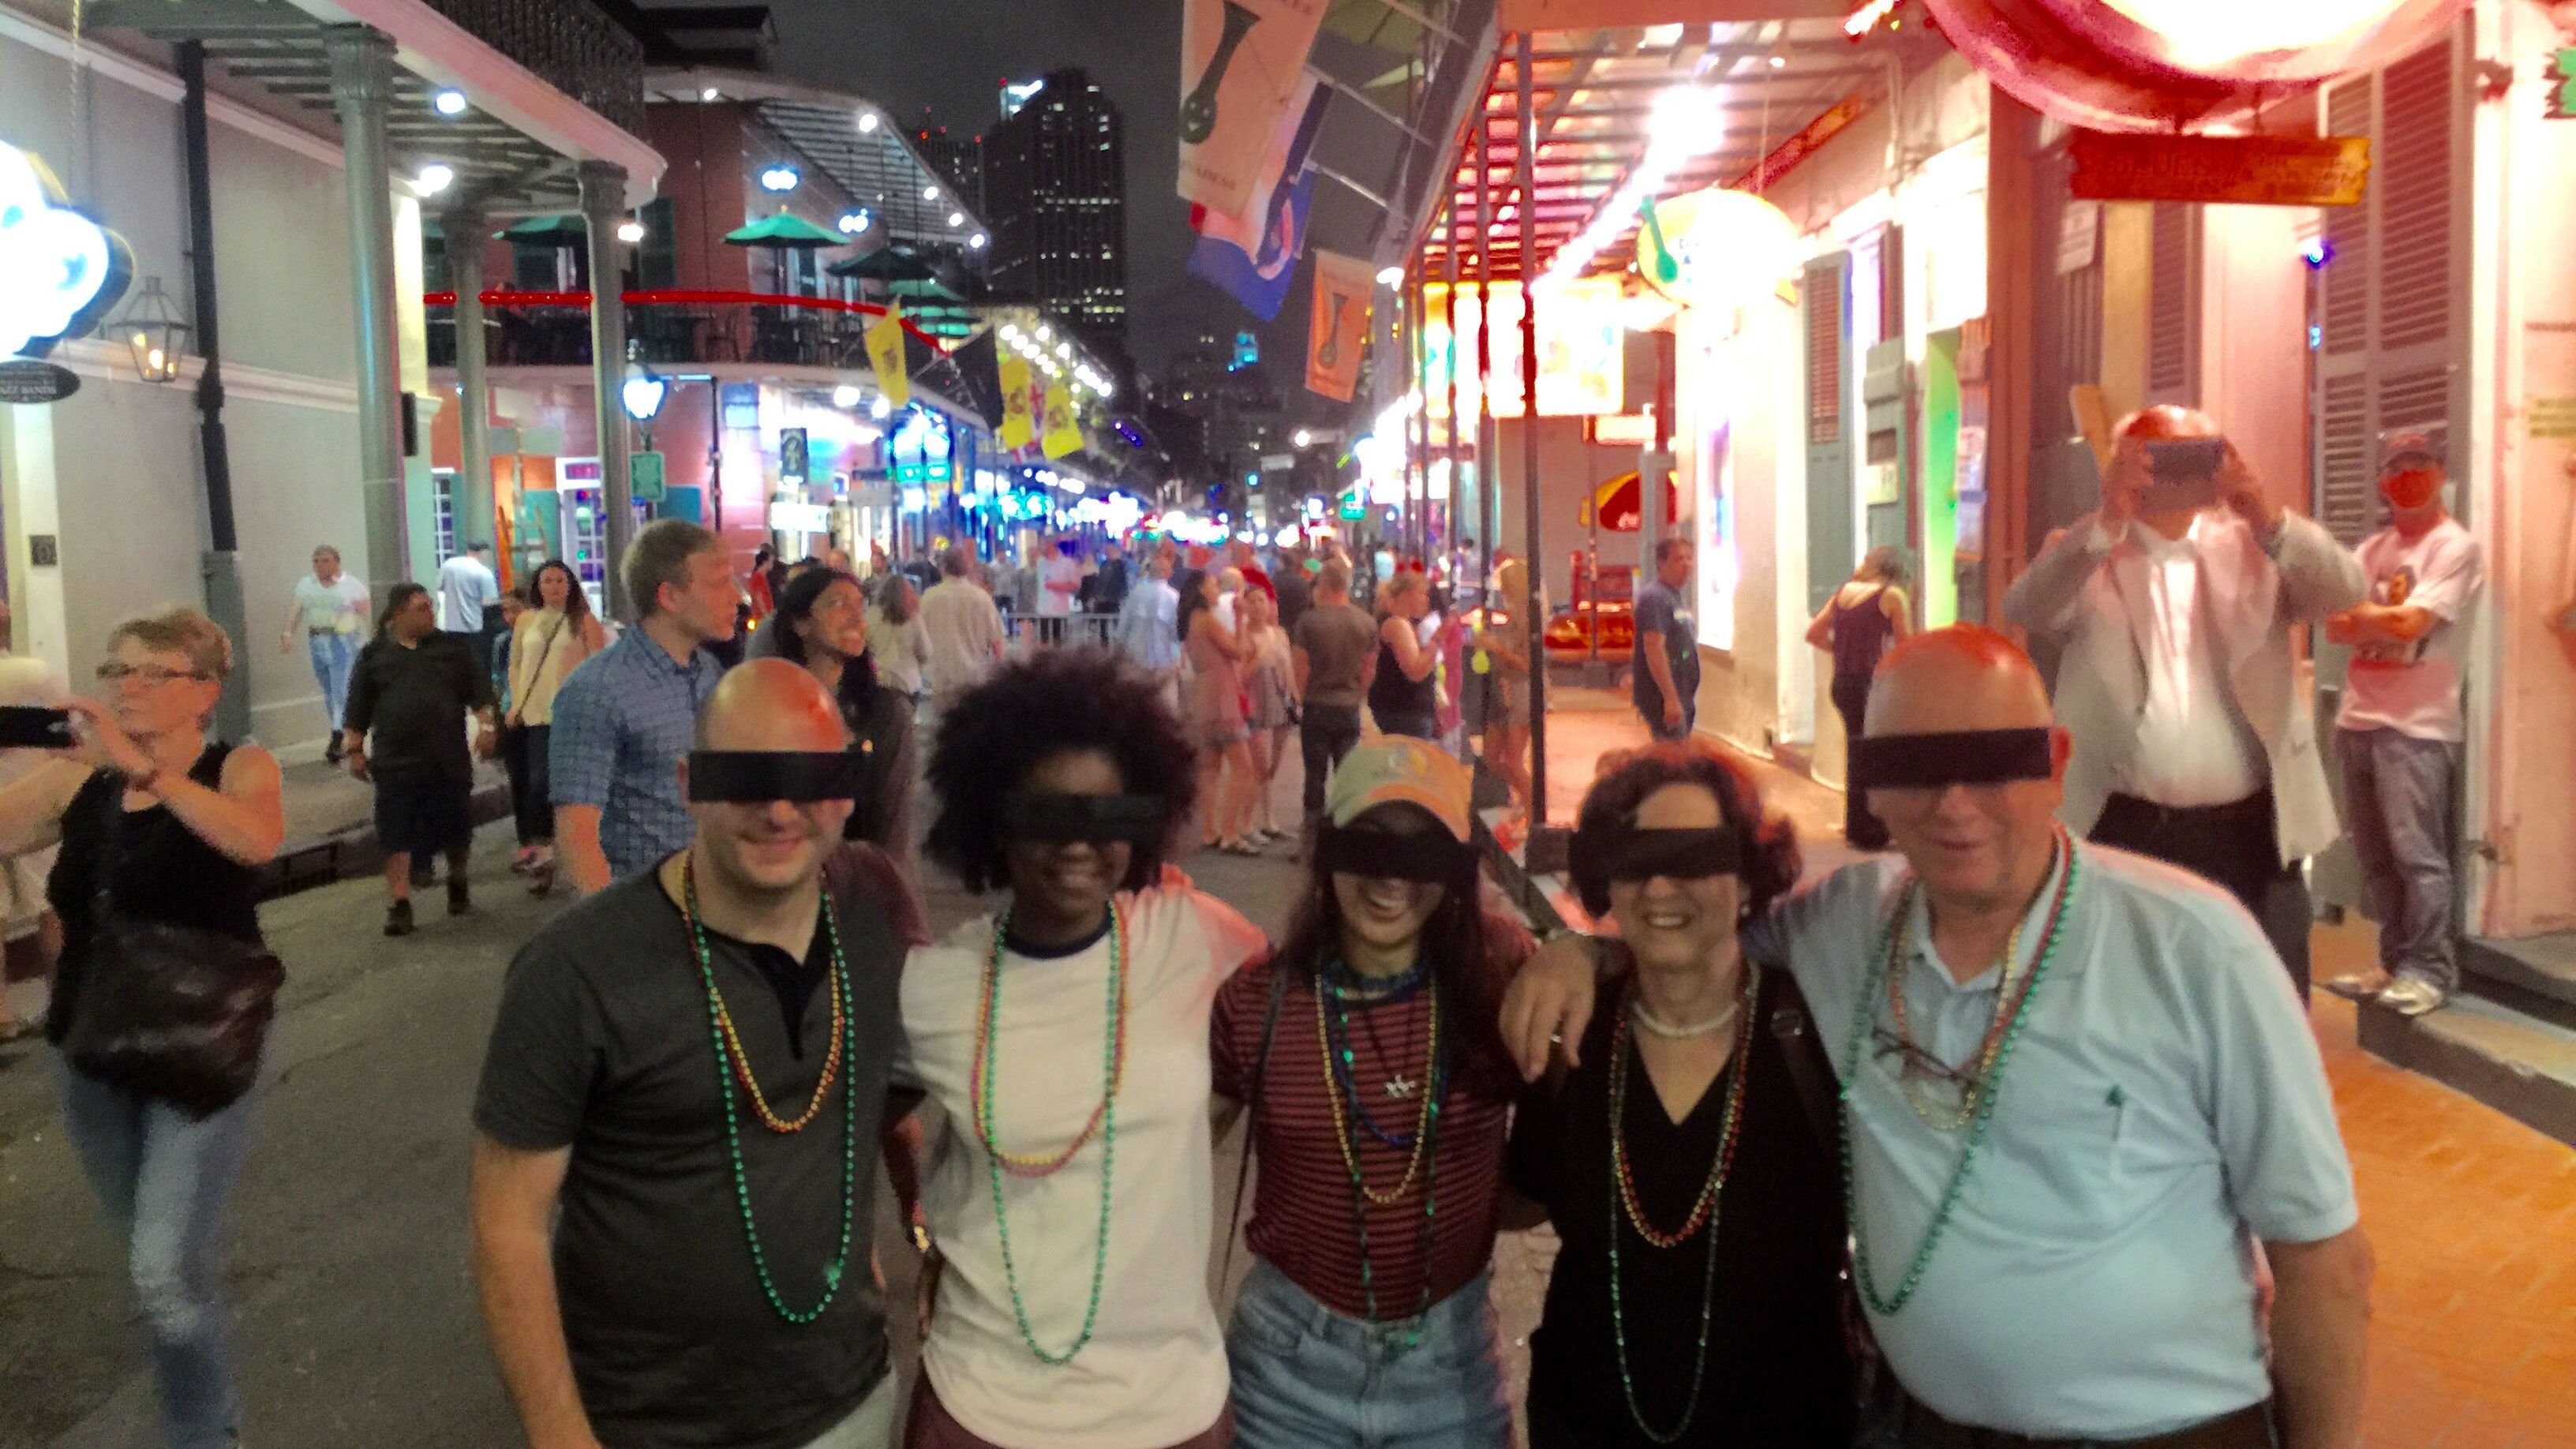 Group posing for picture with censor bar glasses on in New Orleans